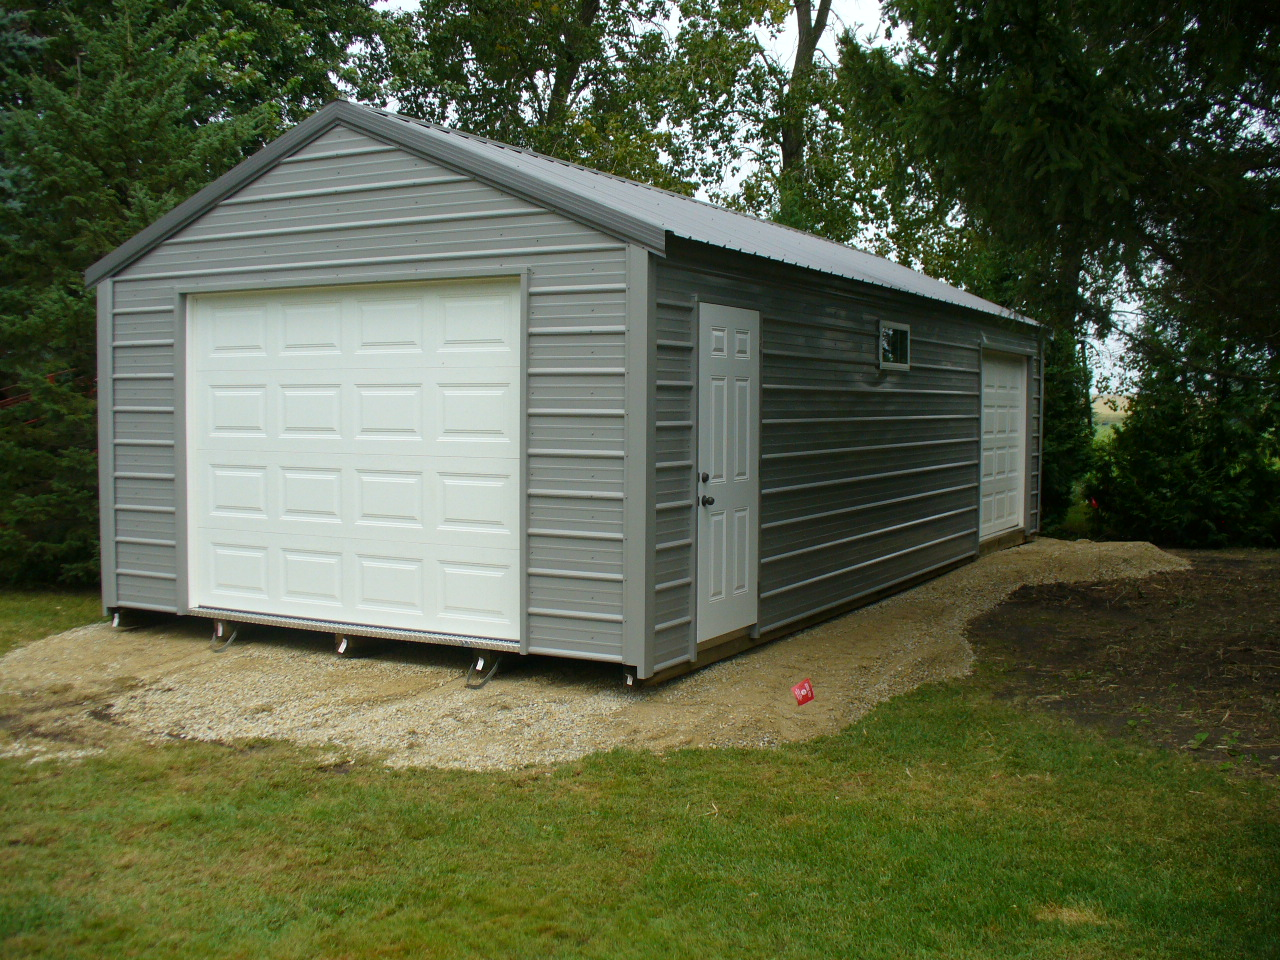 Swedes Portable One-Stall Garage with Over-head Doors